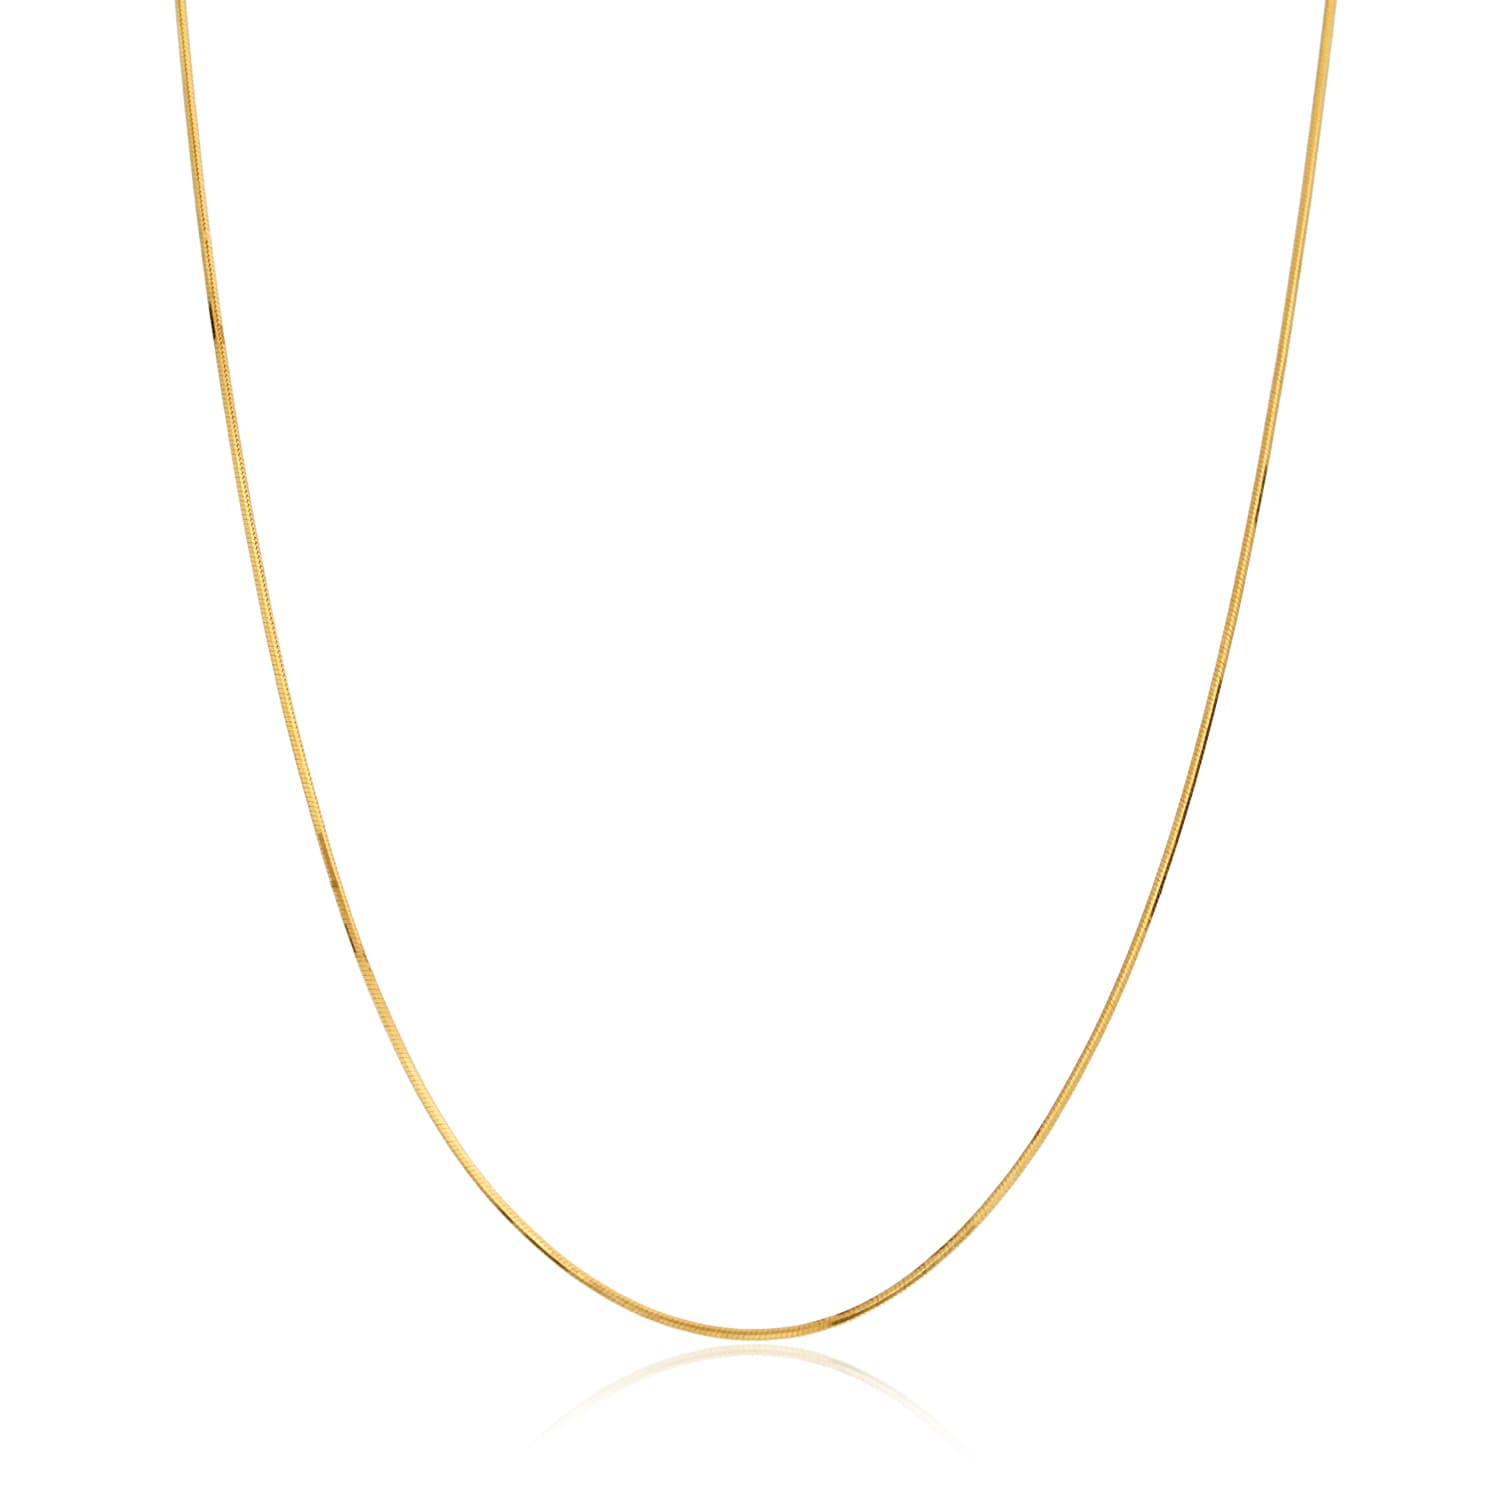 24 carat gold plated silver chain models